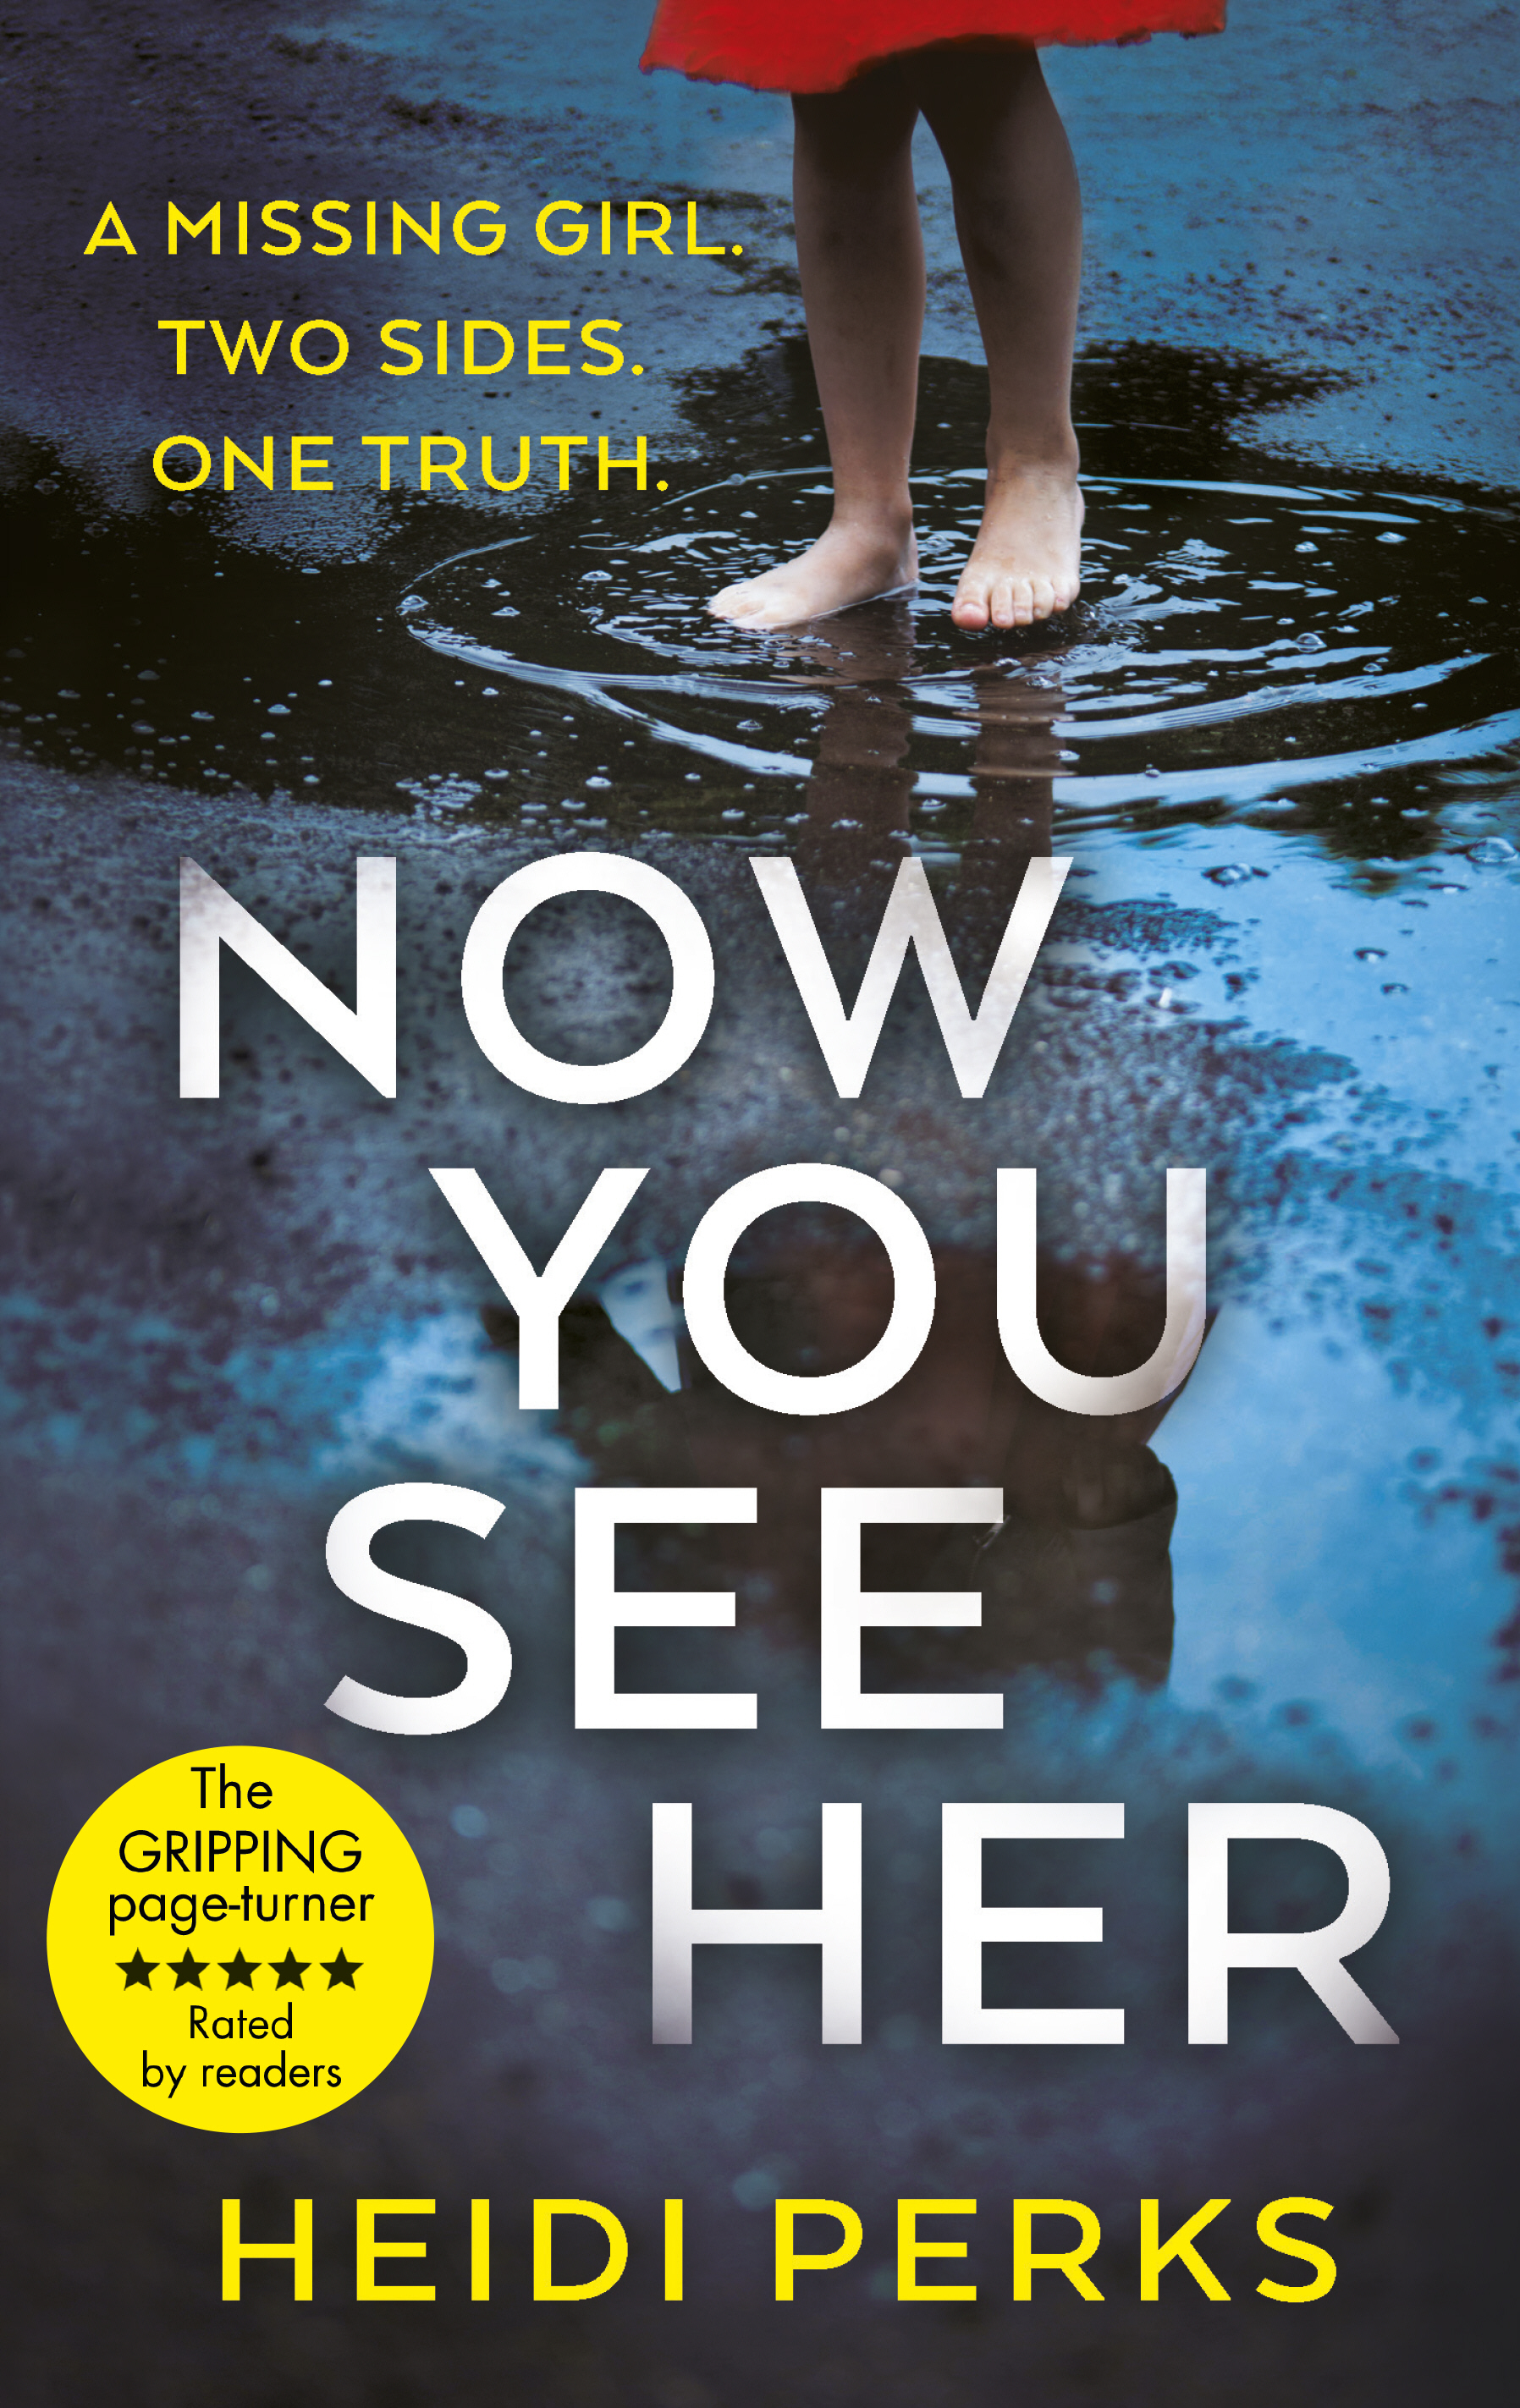 Now You See Her: Heidi Perks talks to Crime Time